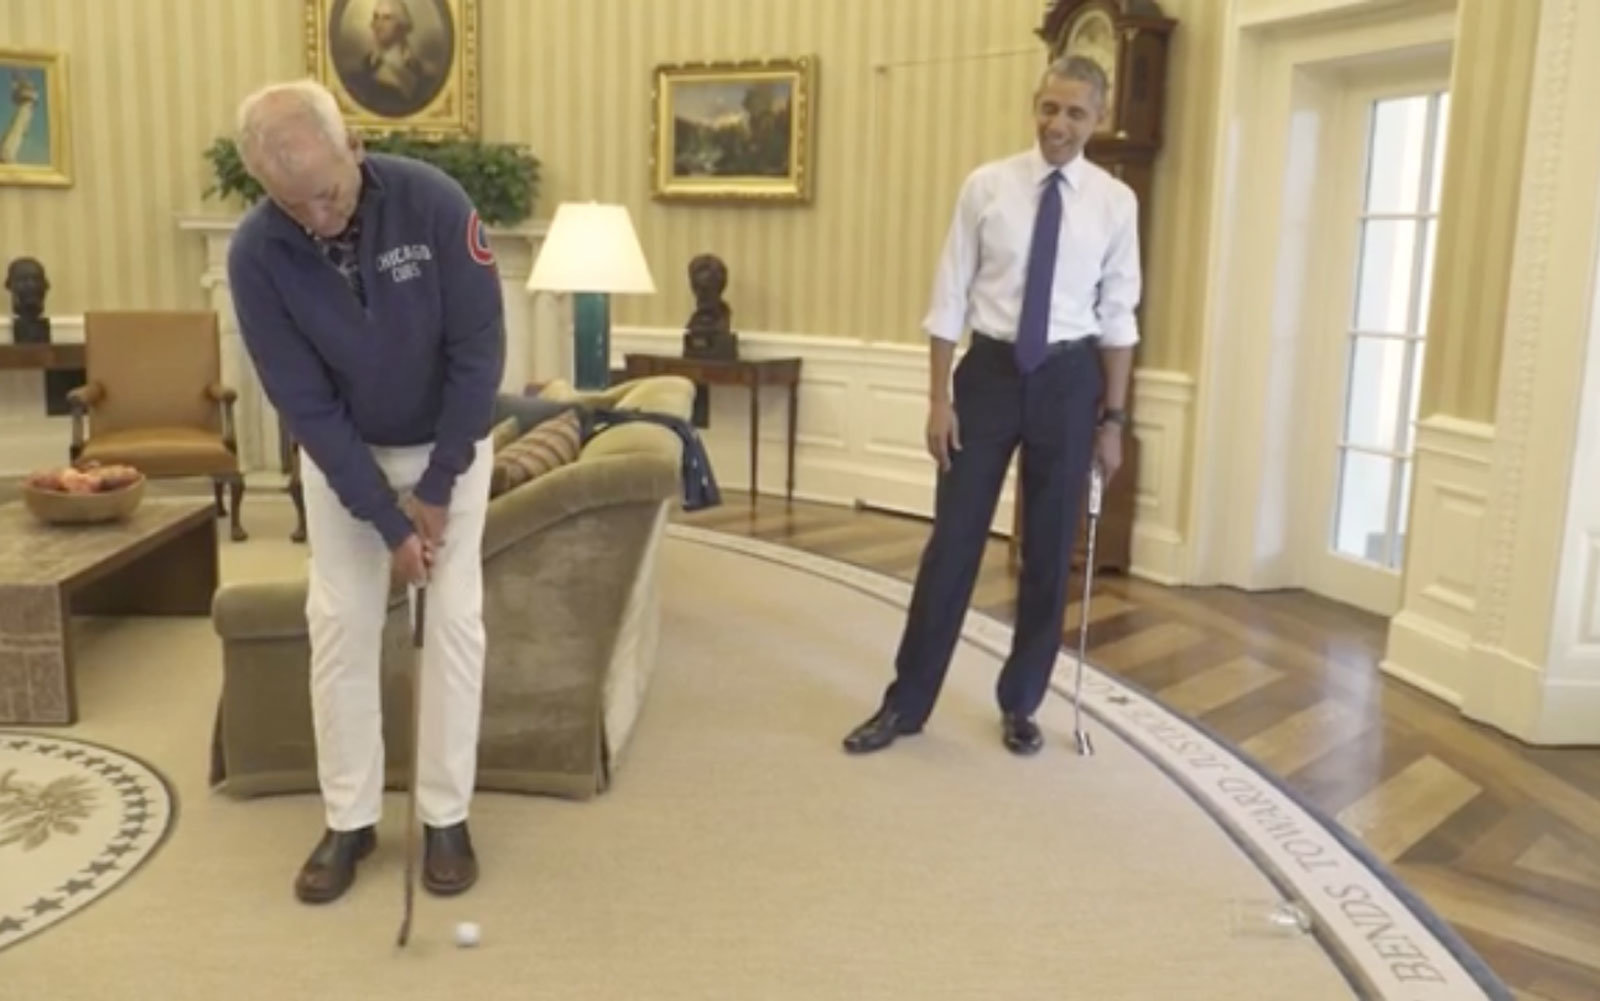 oval office photos. Bill Murray And President Barack Obama In The Oval Office. Office Photos